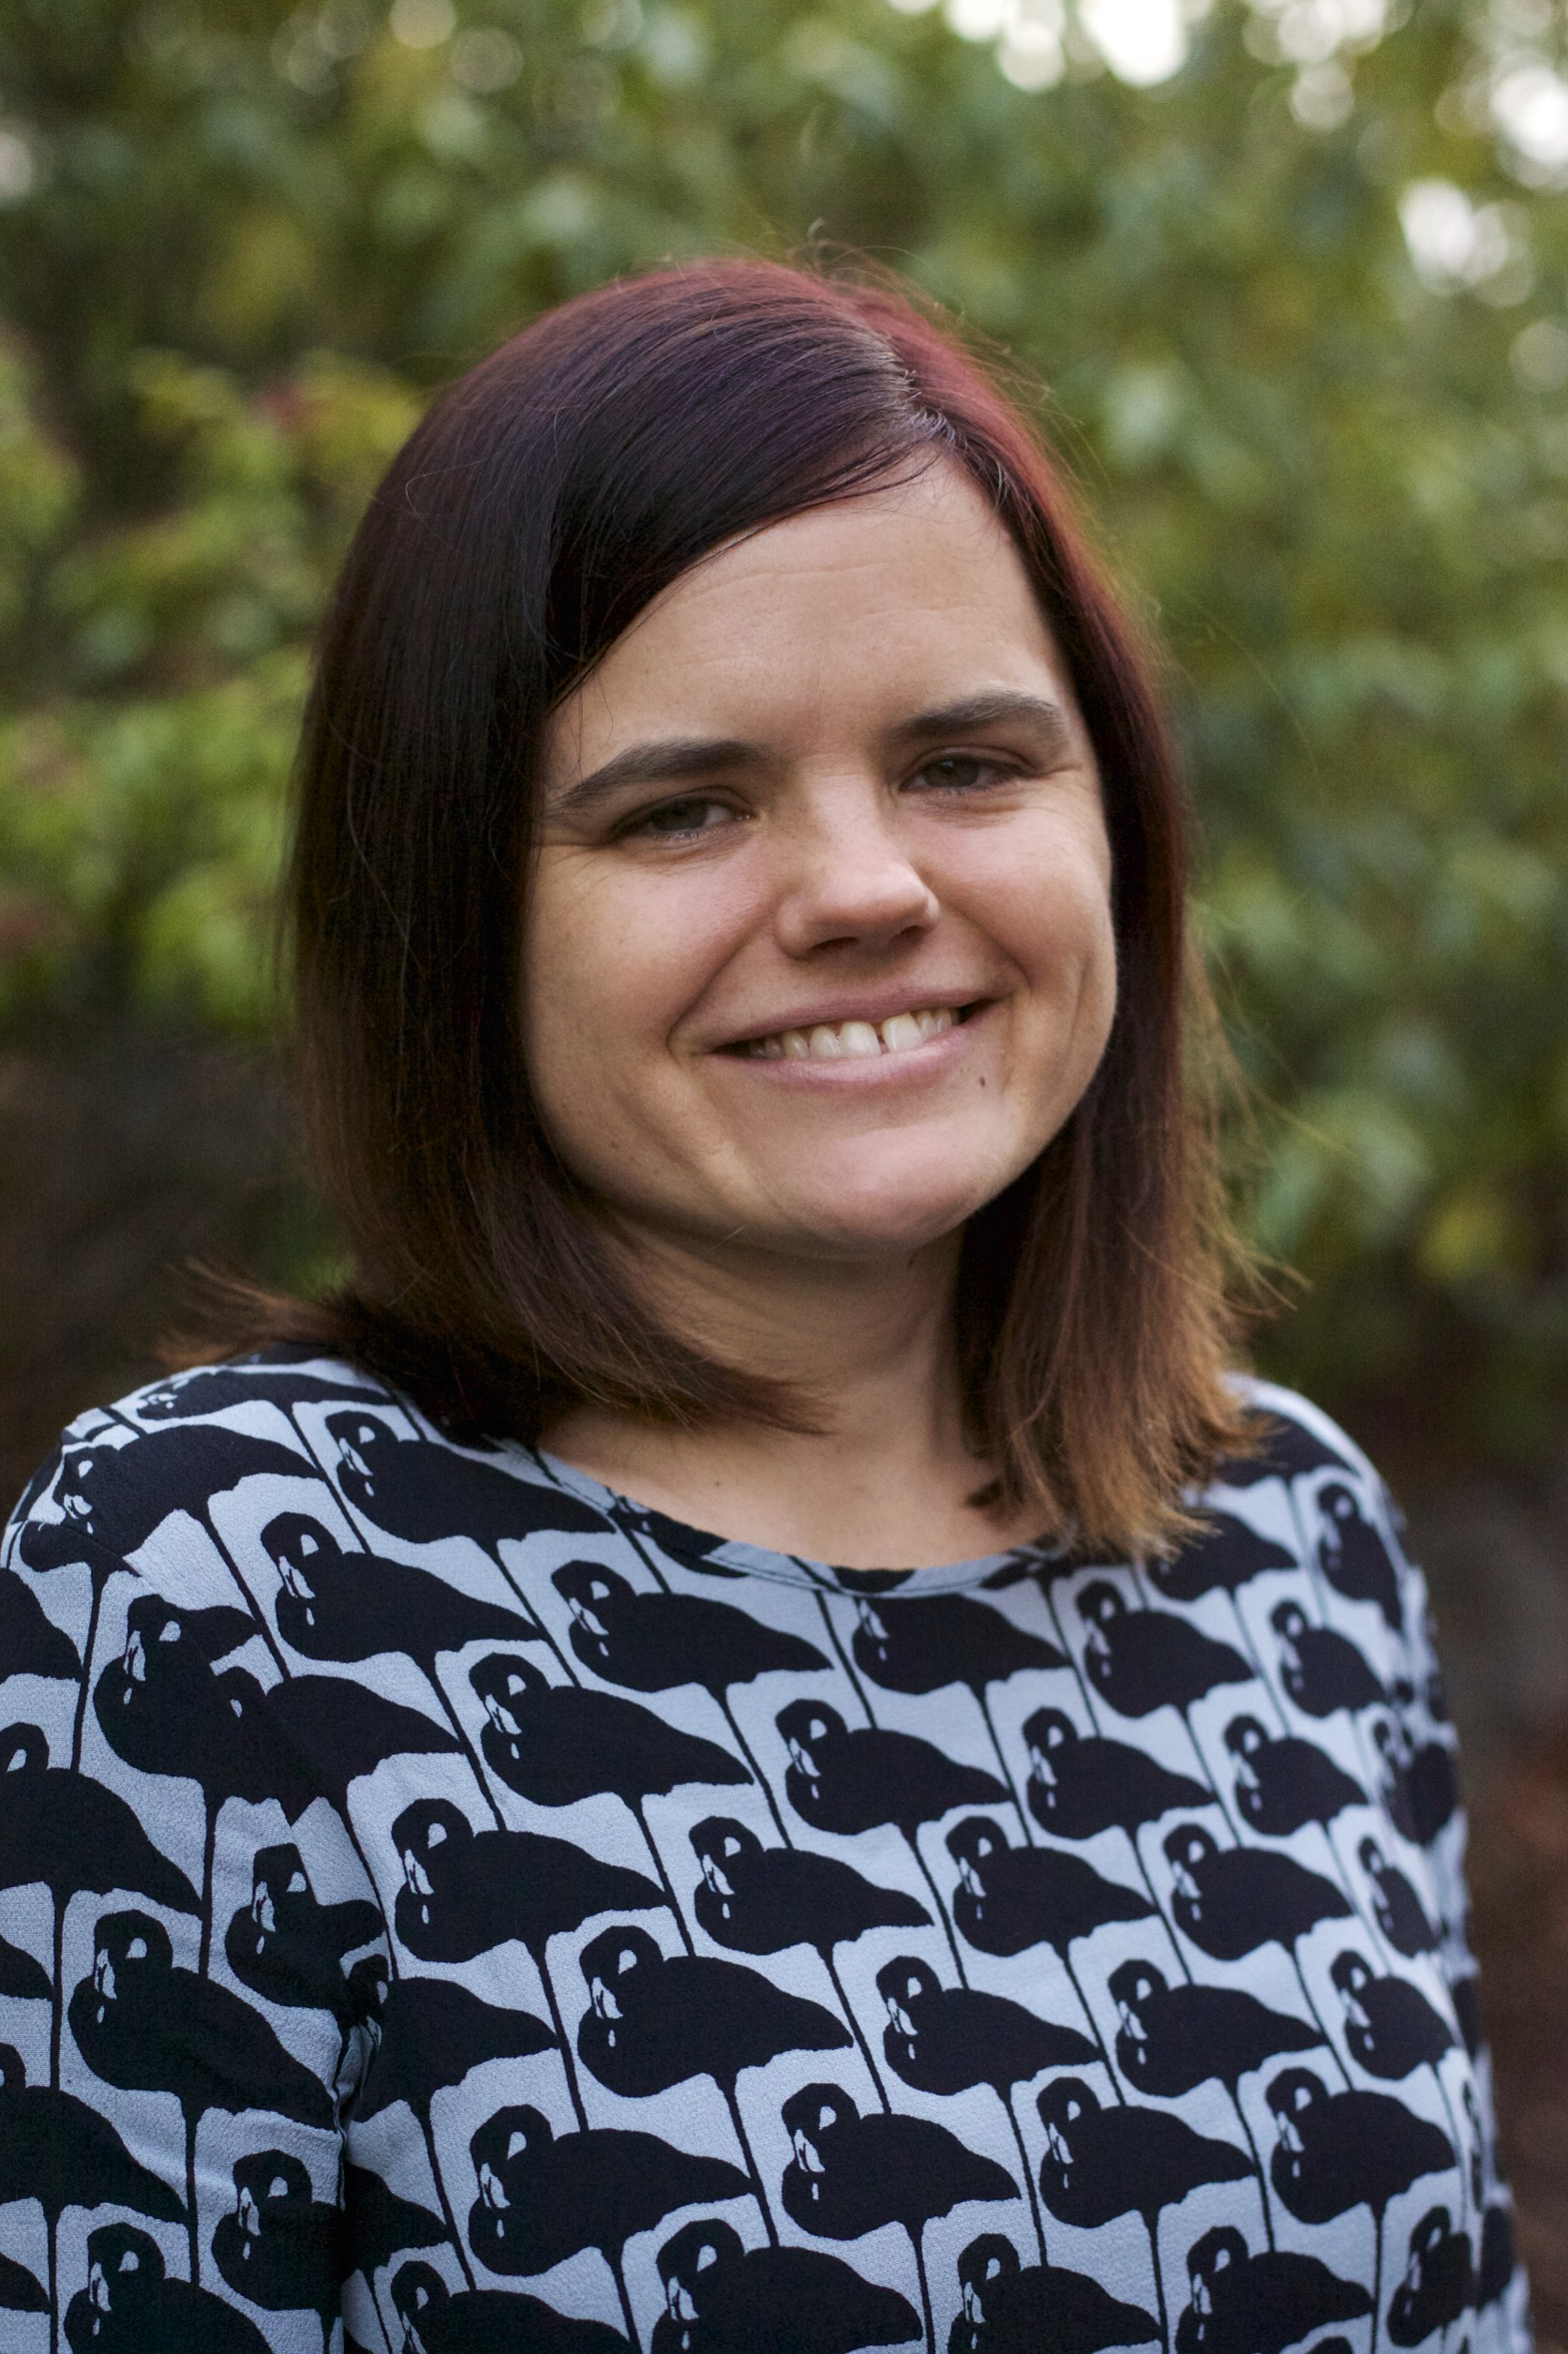 Nicole Hollinsworth, Msw, Licsw    ∙  Children, Adolescents, Young adults, and Families, ages 3 and up.  ∙  Play and Art Therapy  ∙  Behavioral issues  ∙  Parenting